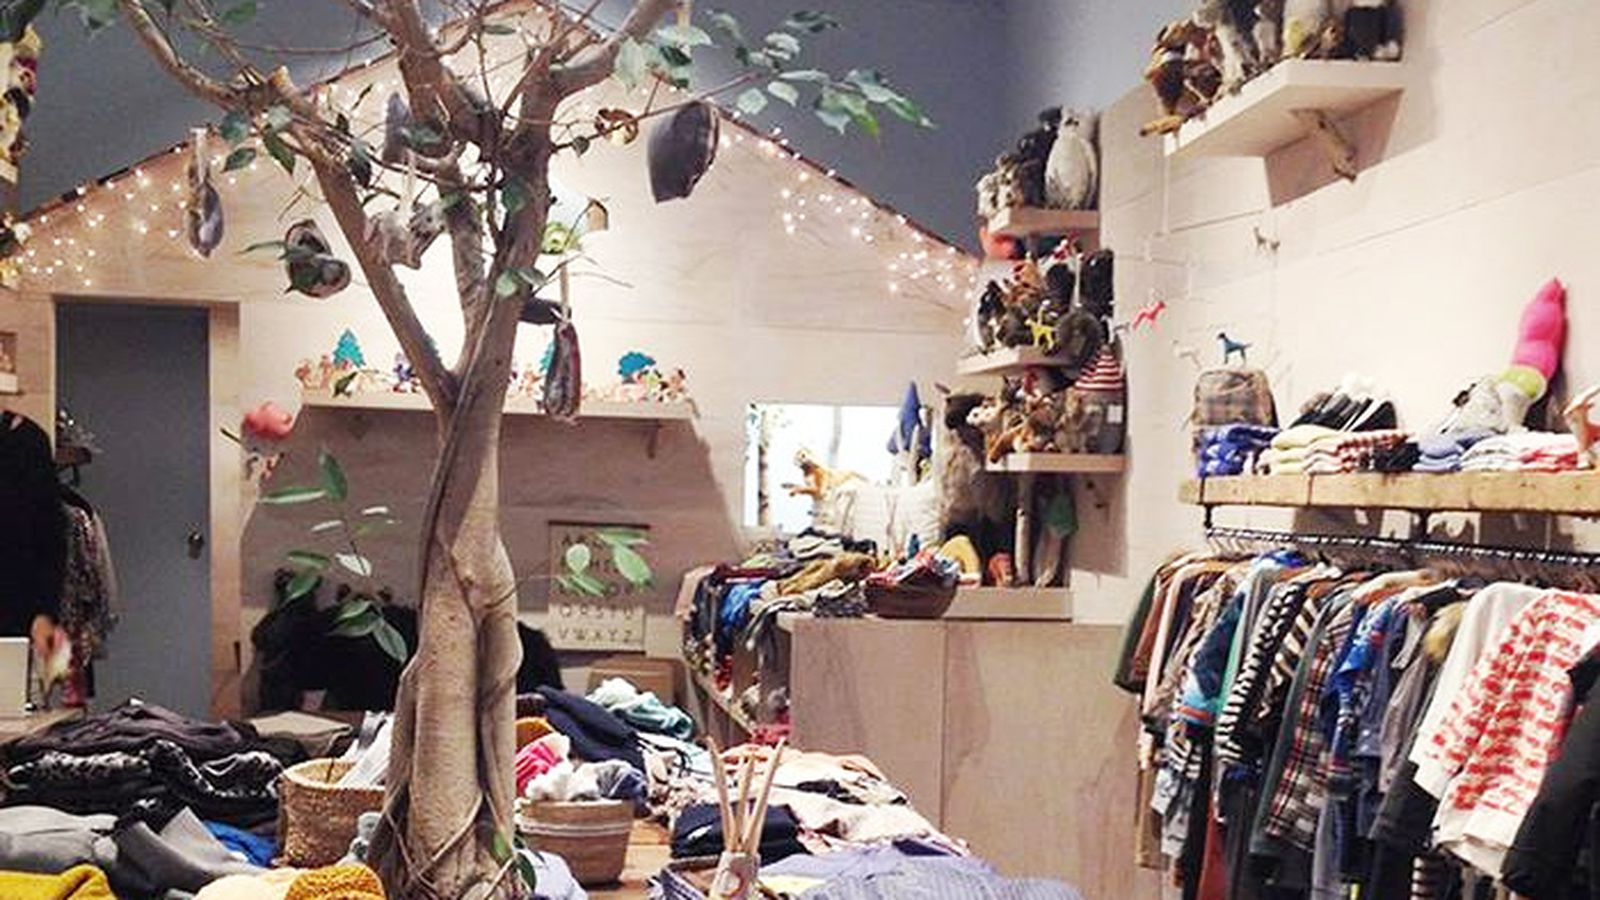 With multiple locations around Los Angeles and in Orange County, including Fashion Island, Santa Monica and elsewhere, Peek Kids is dedicated to offering beautiful children's clothing for girls.